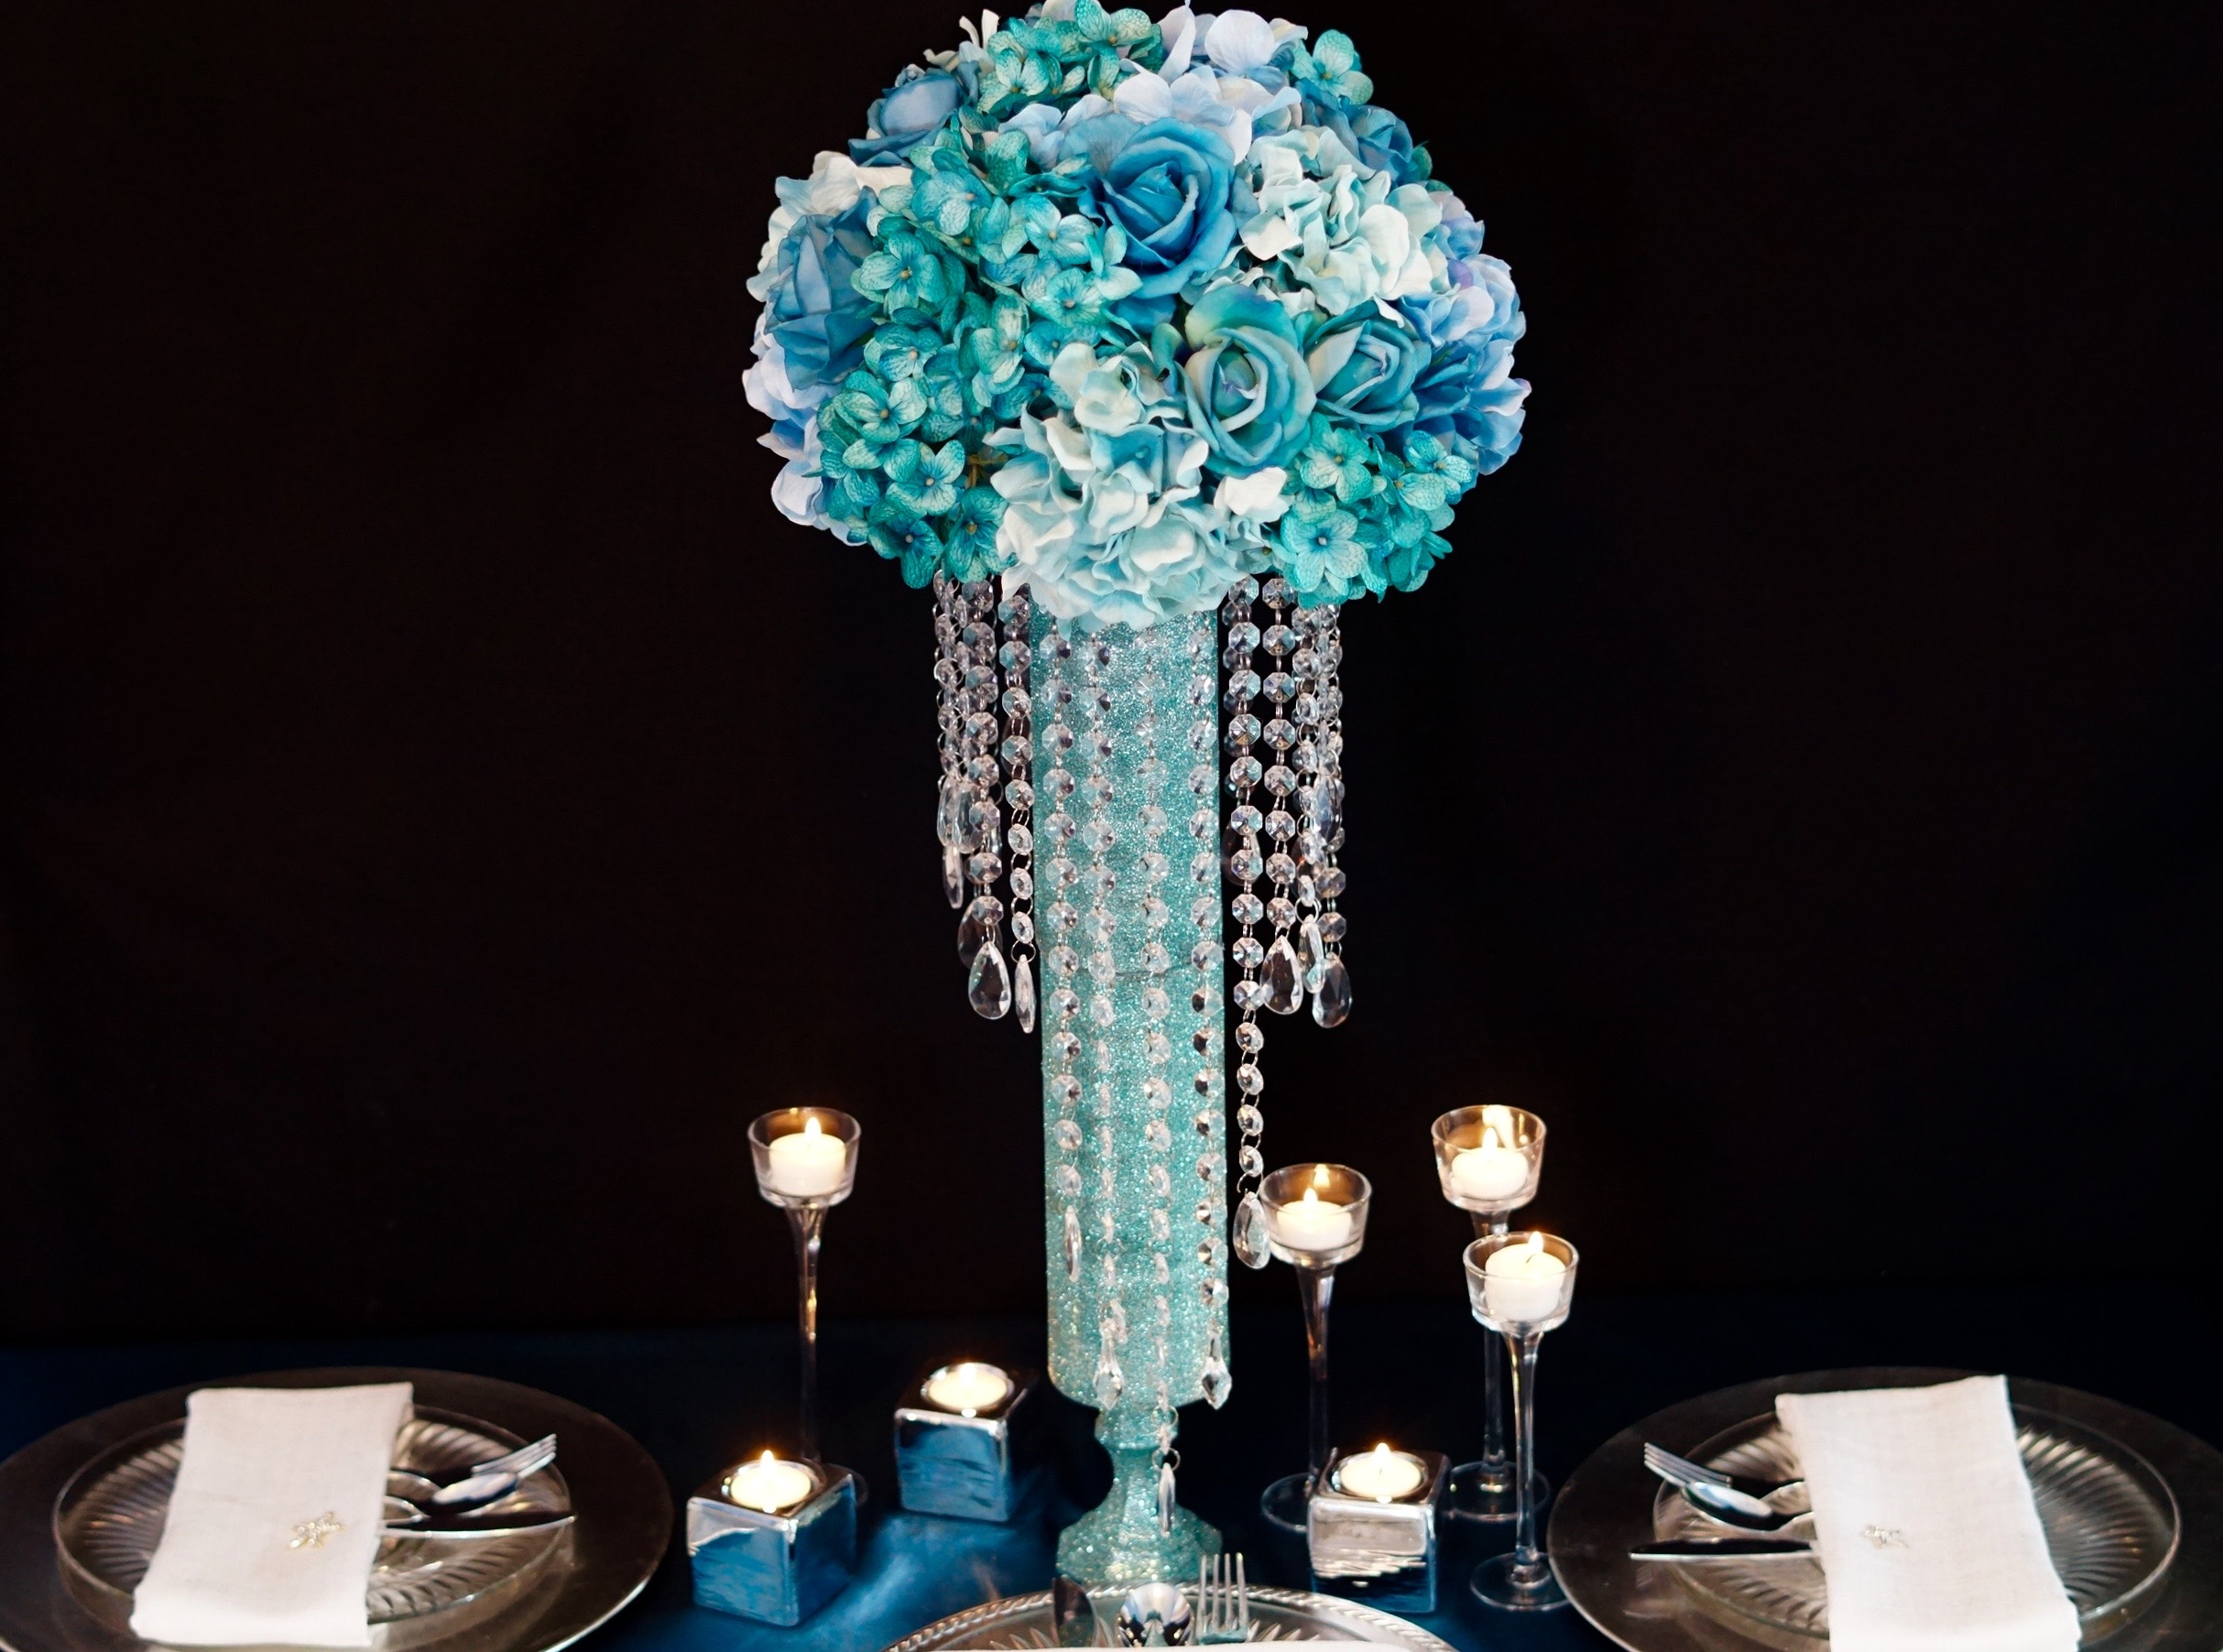 Blue diy wedding centerpieces for your under the sea beach